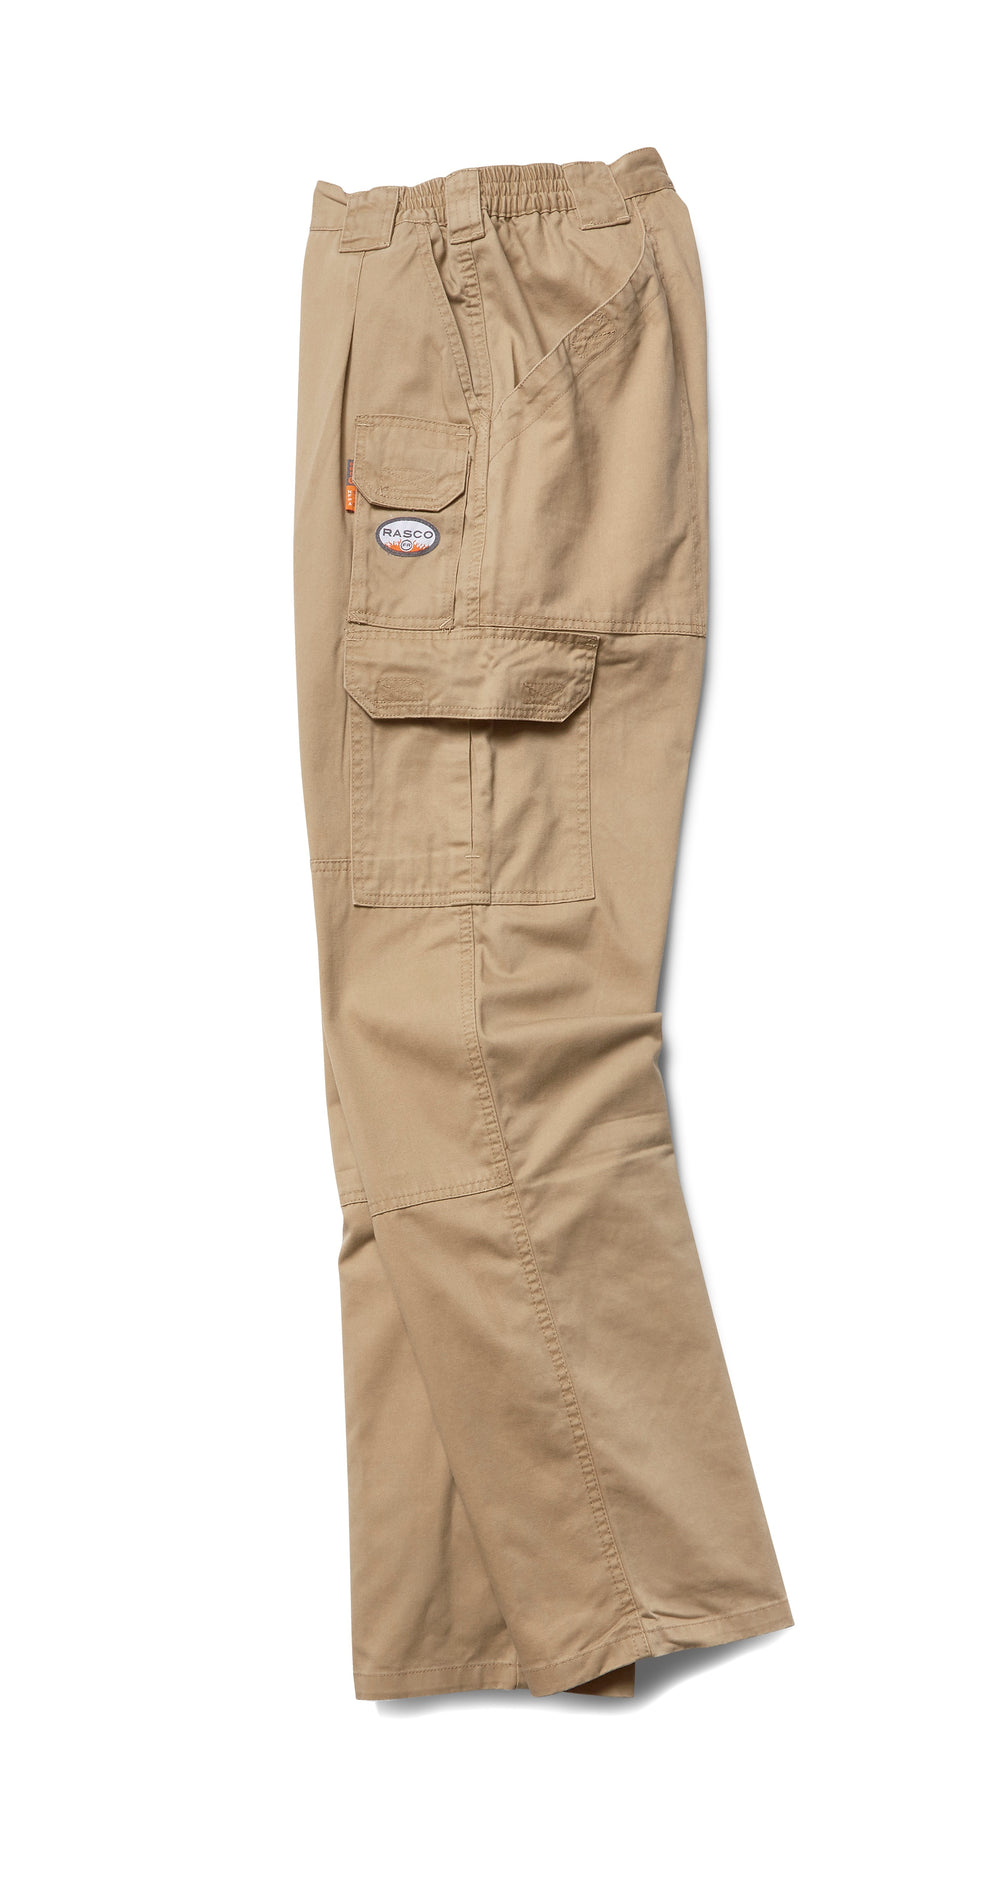 Rasco FR Men's 7 Pocket Khaki Field Pants FR4303KH